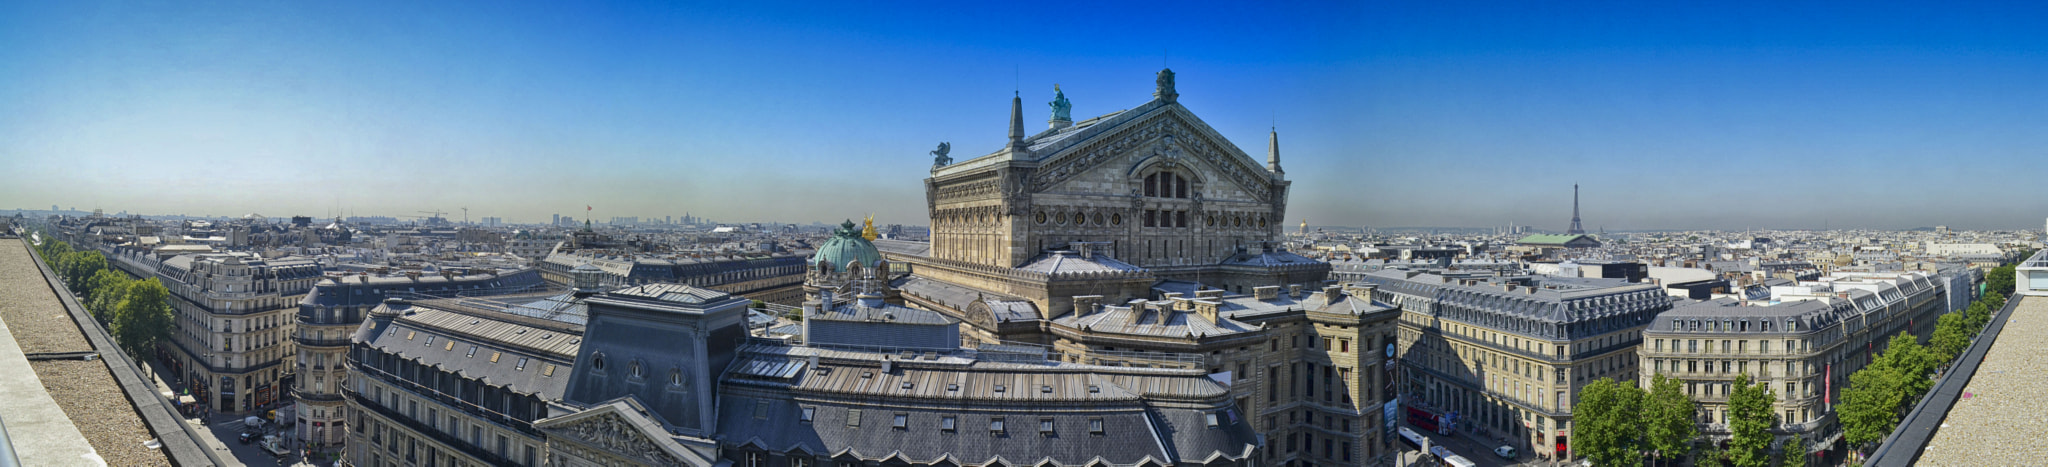 Photograph Paris Panorama by Sascha Reichhardt on 500px